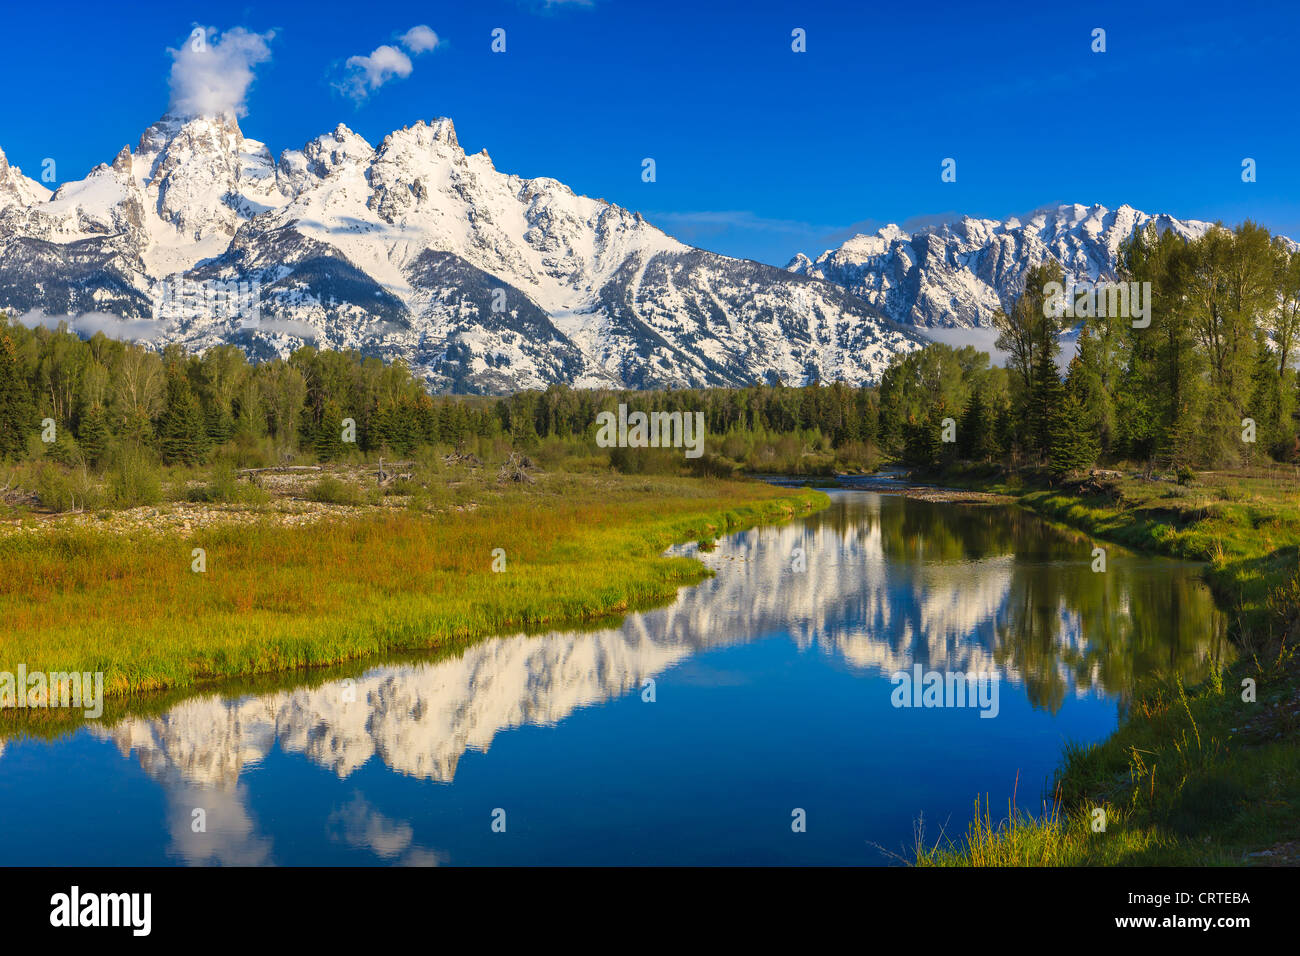 Schwabacher in atterraggio a Grand Teton National Park in Wyoming, STATI UNITI D'AMERICA Immagini Stock